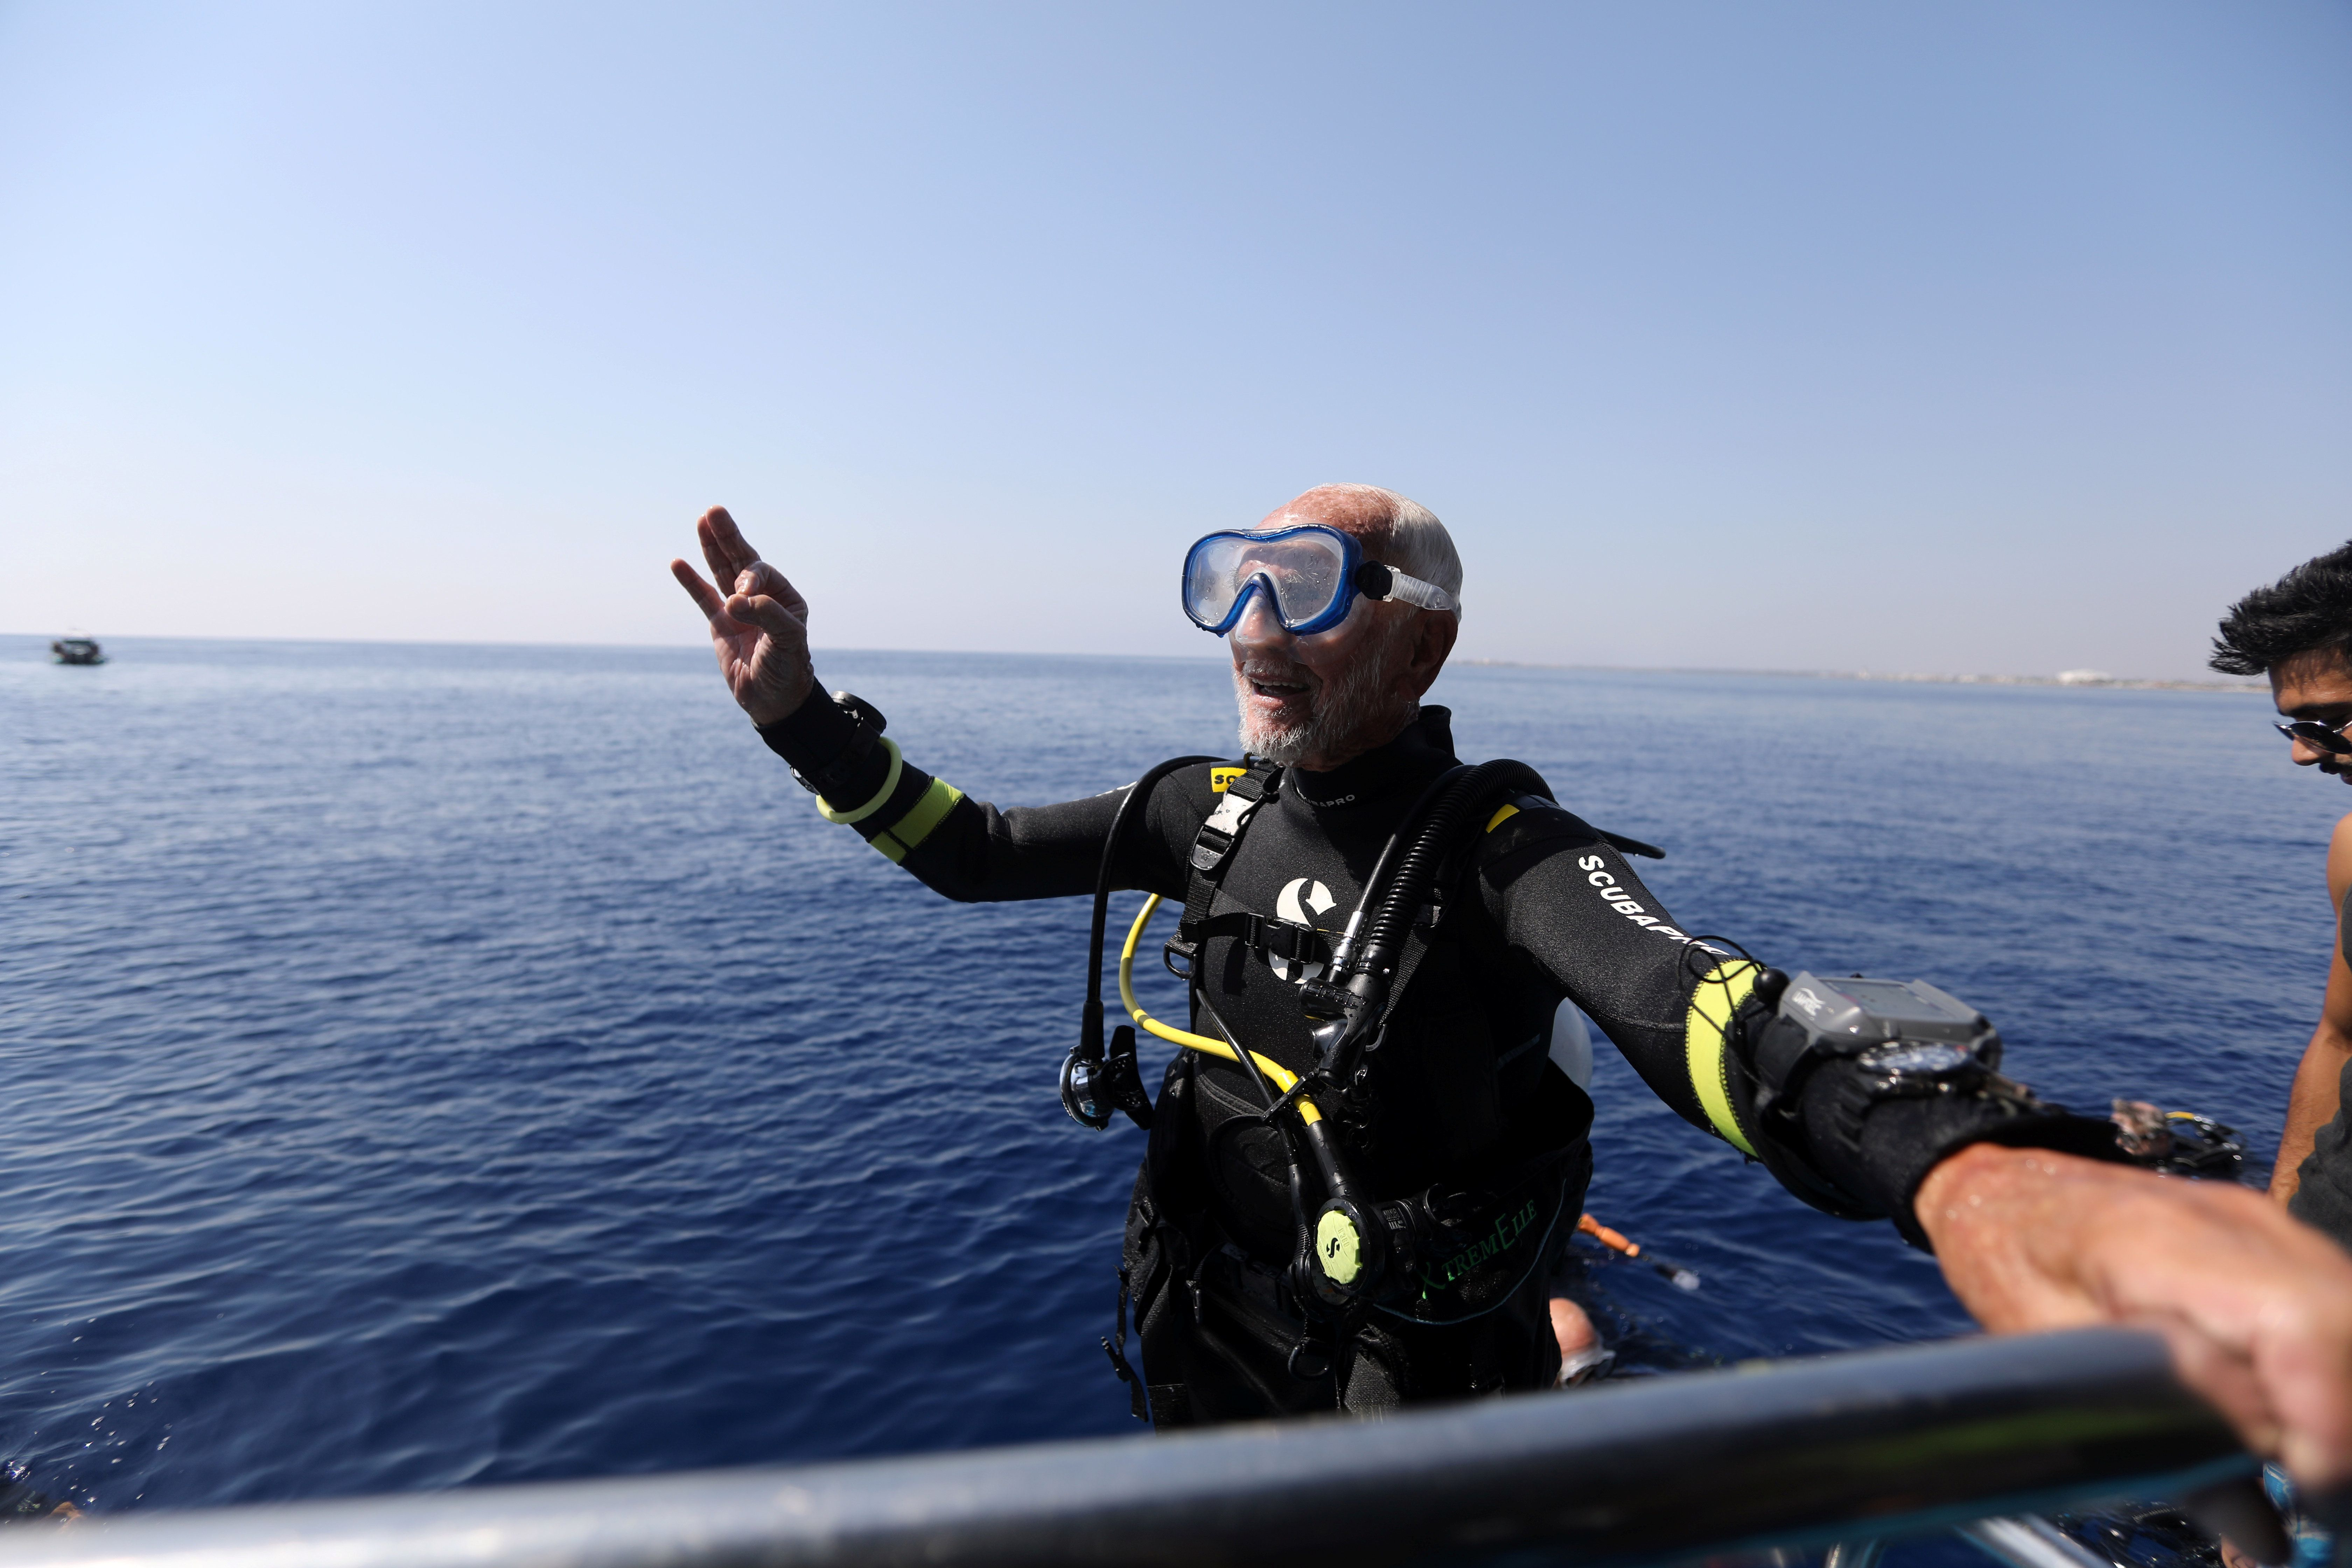 Ray Woolley, pioneer diver and World War 2 veteran, gestures after breaking a new diving record as he turns 95 by taking the plunge at the Zenobia, a cargo ship wreck off the Cypriot town of Larnaca, Cyprus September 1, 2018. REUTERS/Yiannis Kourtoglou